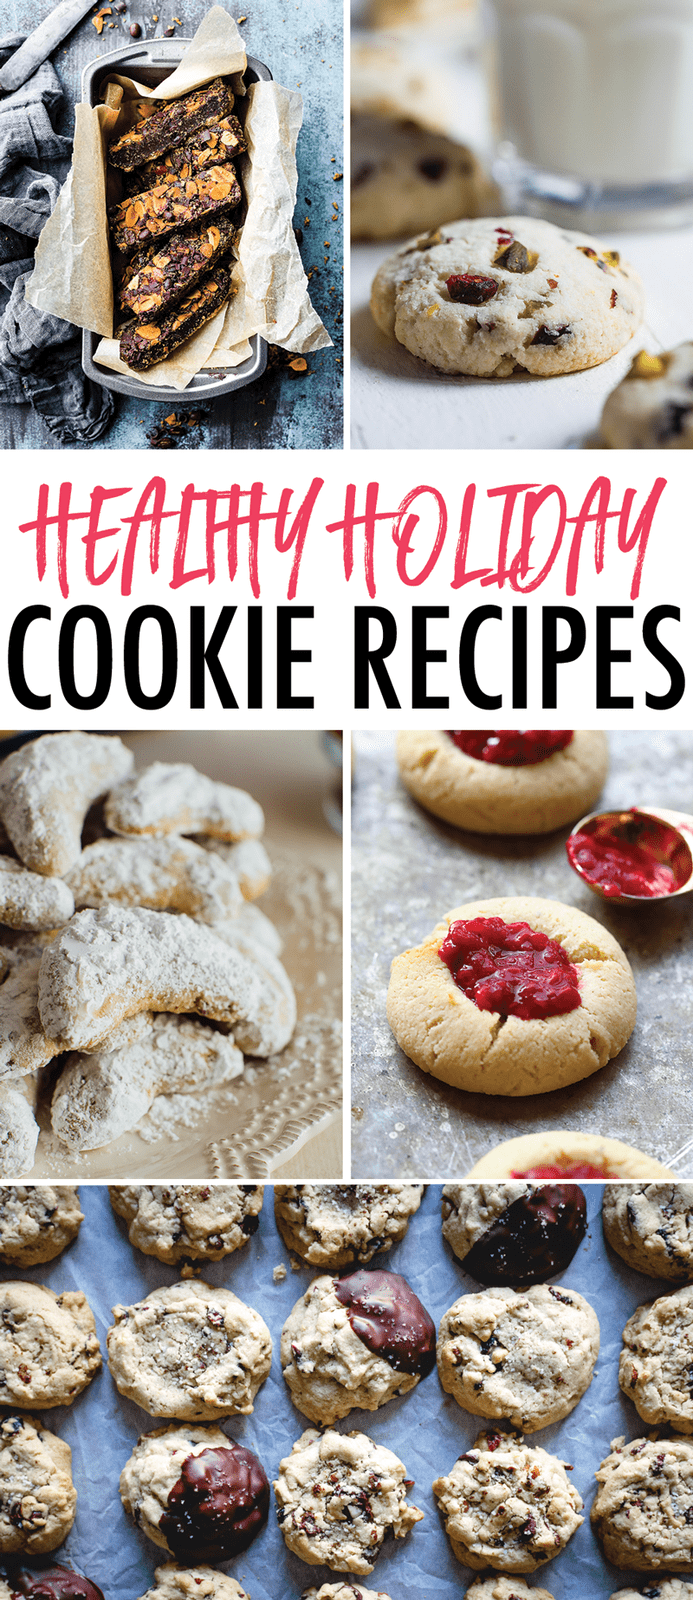 These gluten-free almond flour crescent cookies are a healthy take on my nanny's crescent cookie recipe. Each cookie only has about 60 calories and 2 grams of sugar plus they can easily be made vegan! gluten-free almond flour crescent cookies are a healthy take on my nanny's crescent cookie recipe. Each cookie only has about 60calories and 2 grams of sugar plus they can easily be made vegan!